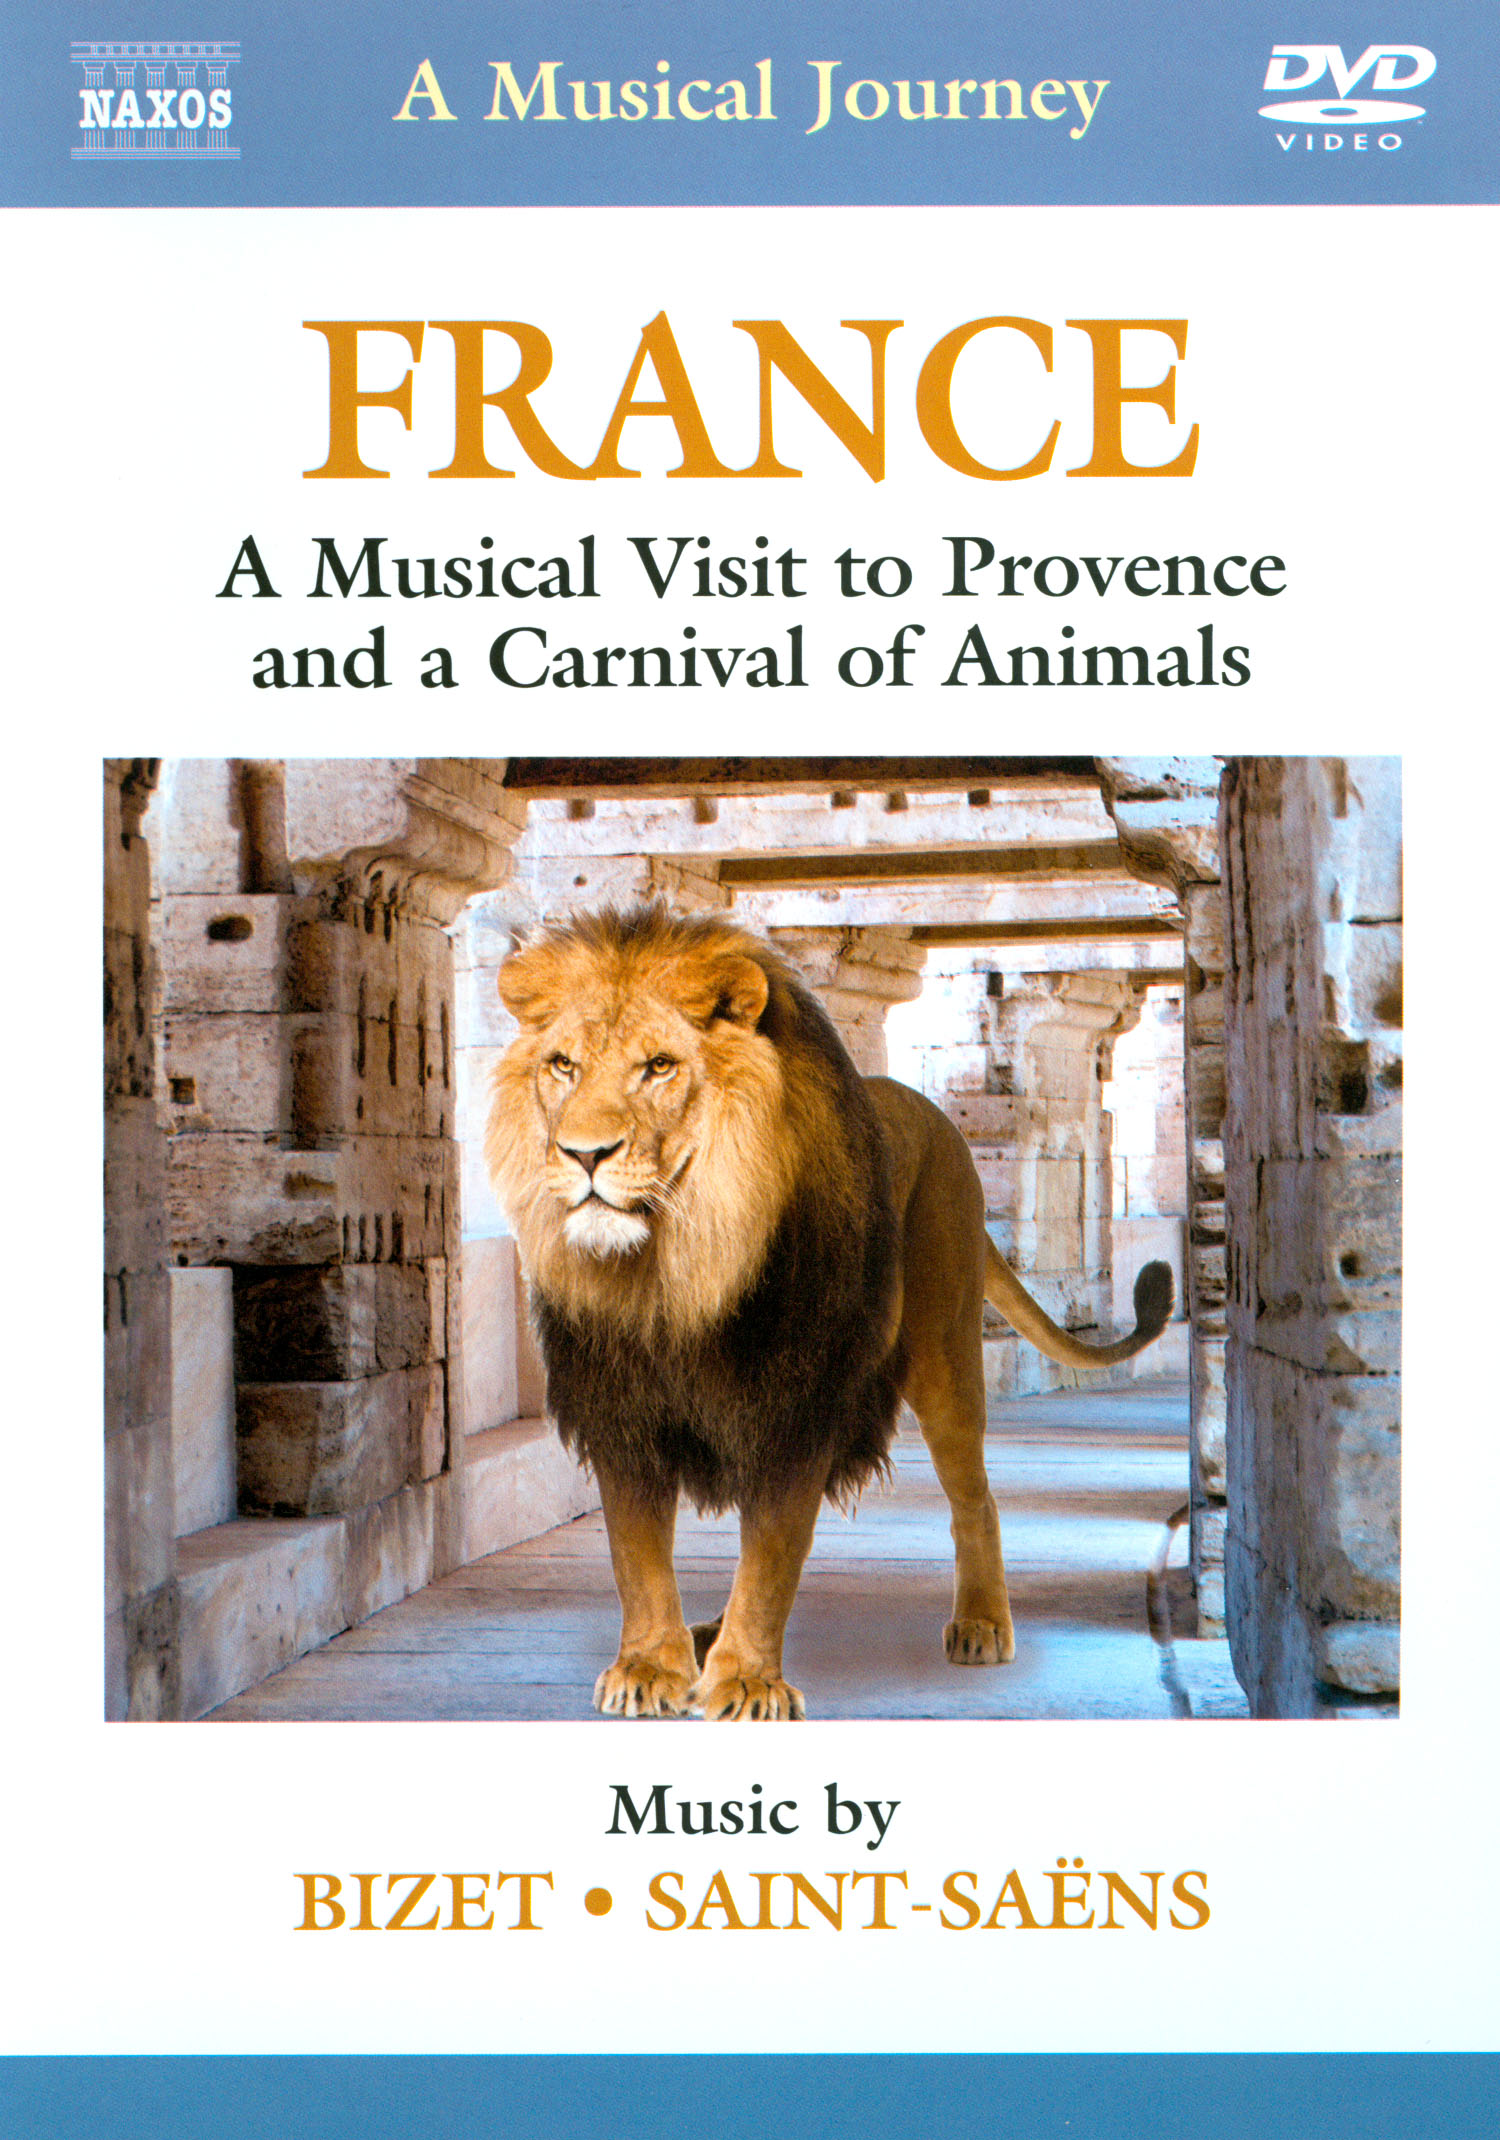 A Musical Journey: France - A Musical Visit to Provence and a Carnival of Animals